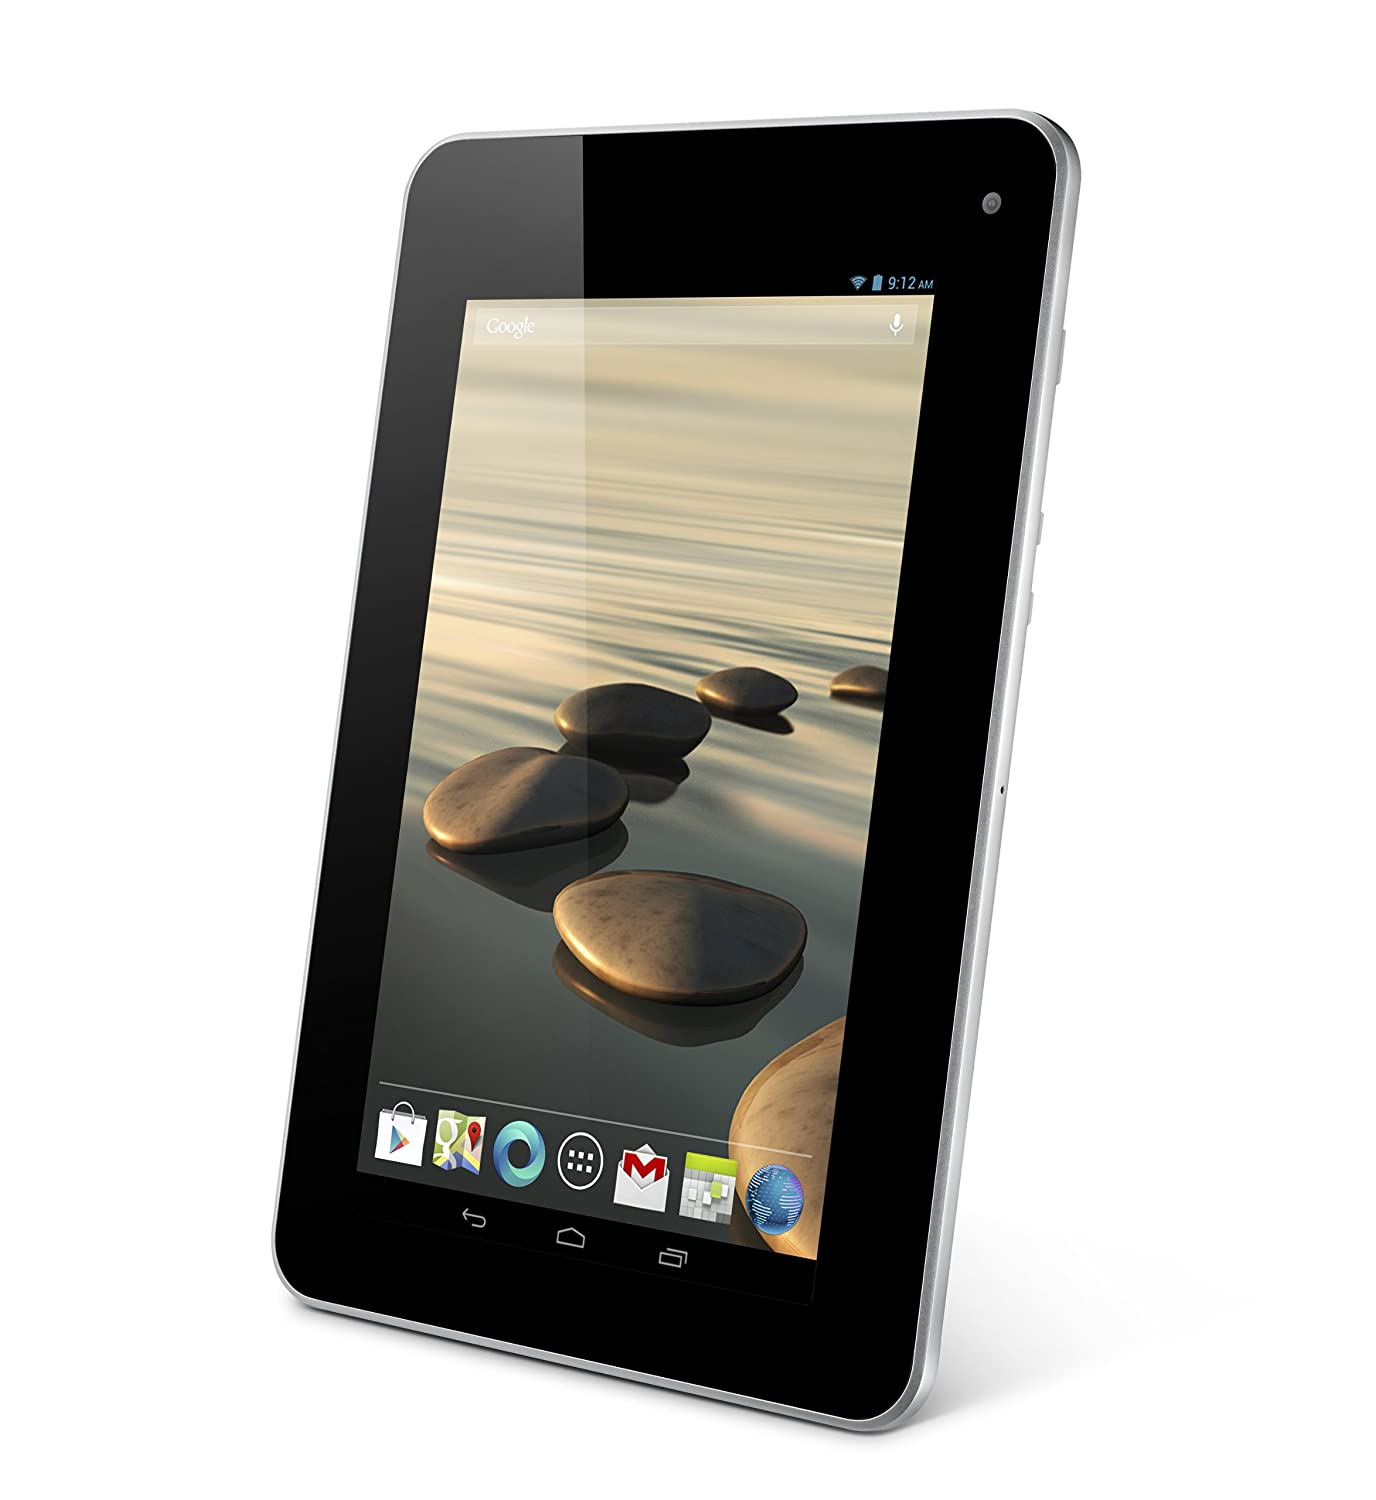 Amazon Acer Iconia B1 710 L401 7 0 inch 8GB Tablet Pure White